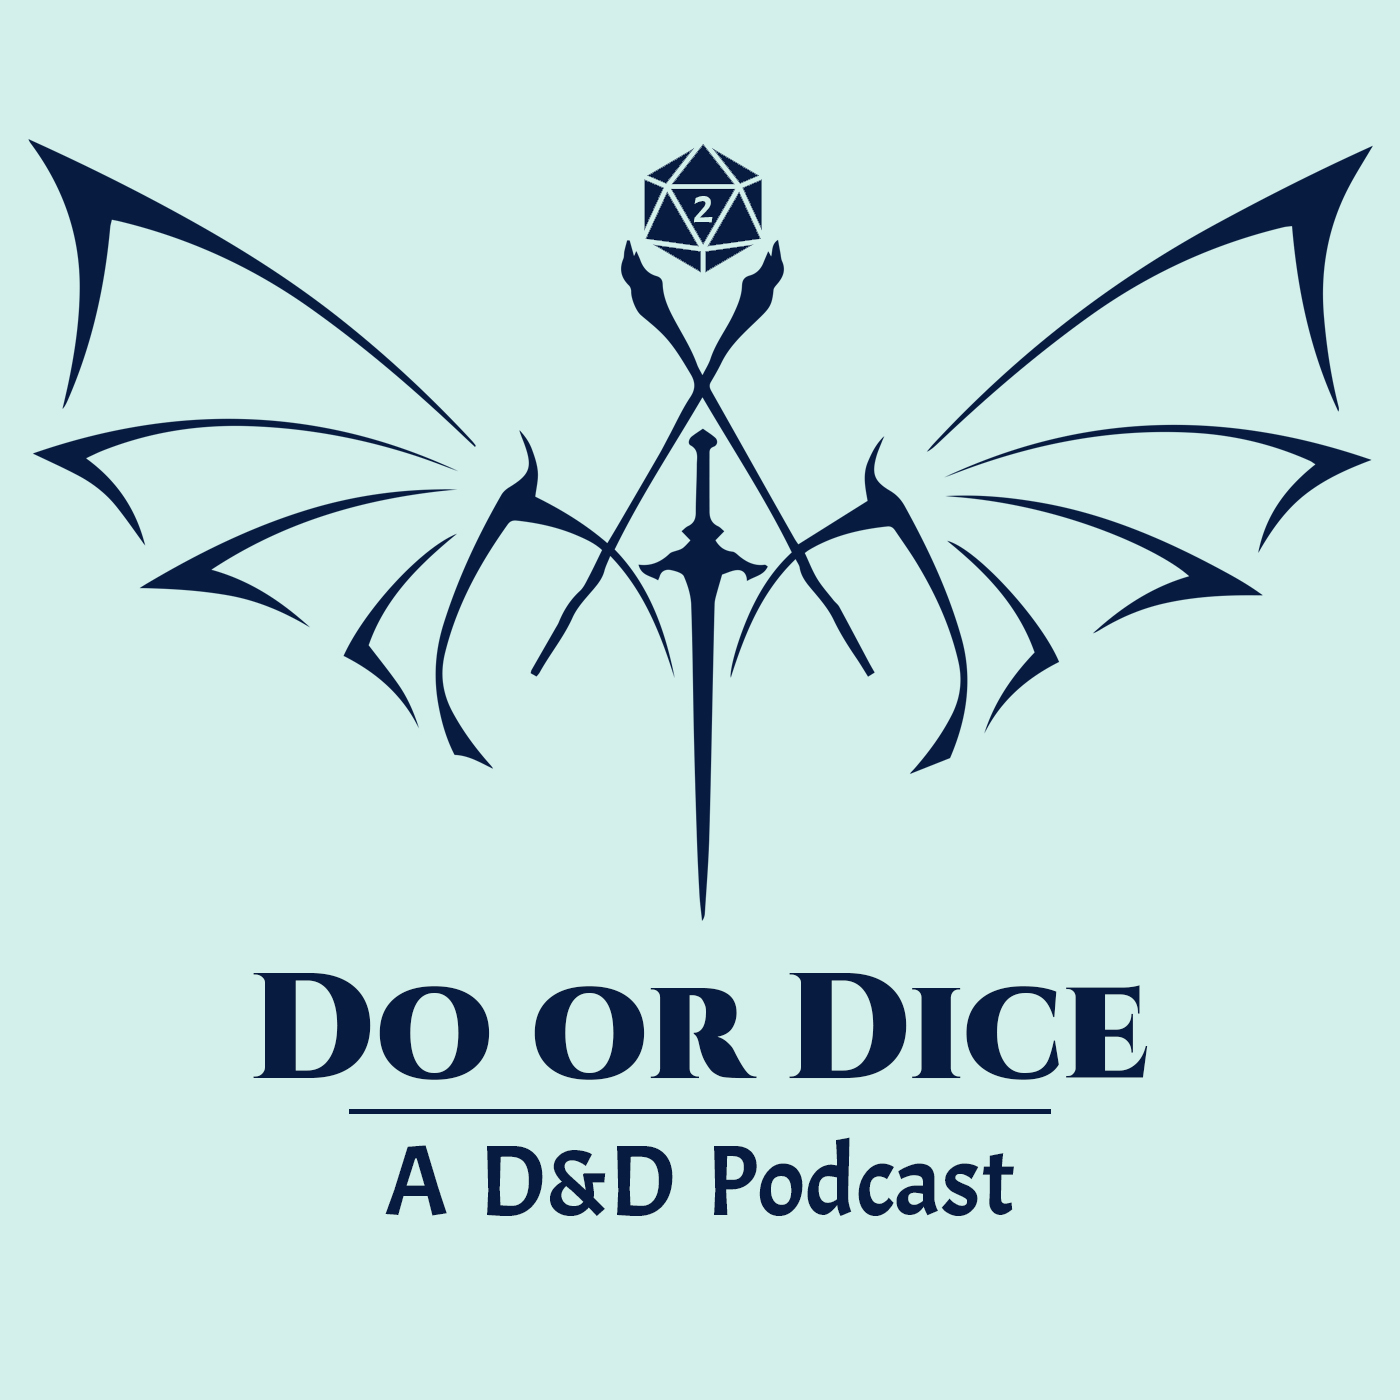 Do Or Dice: A D&D Podcast